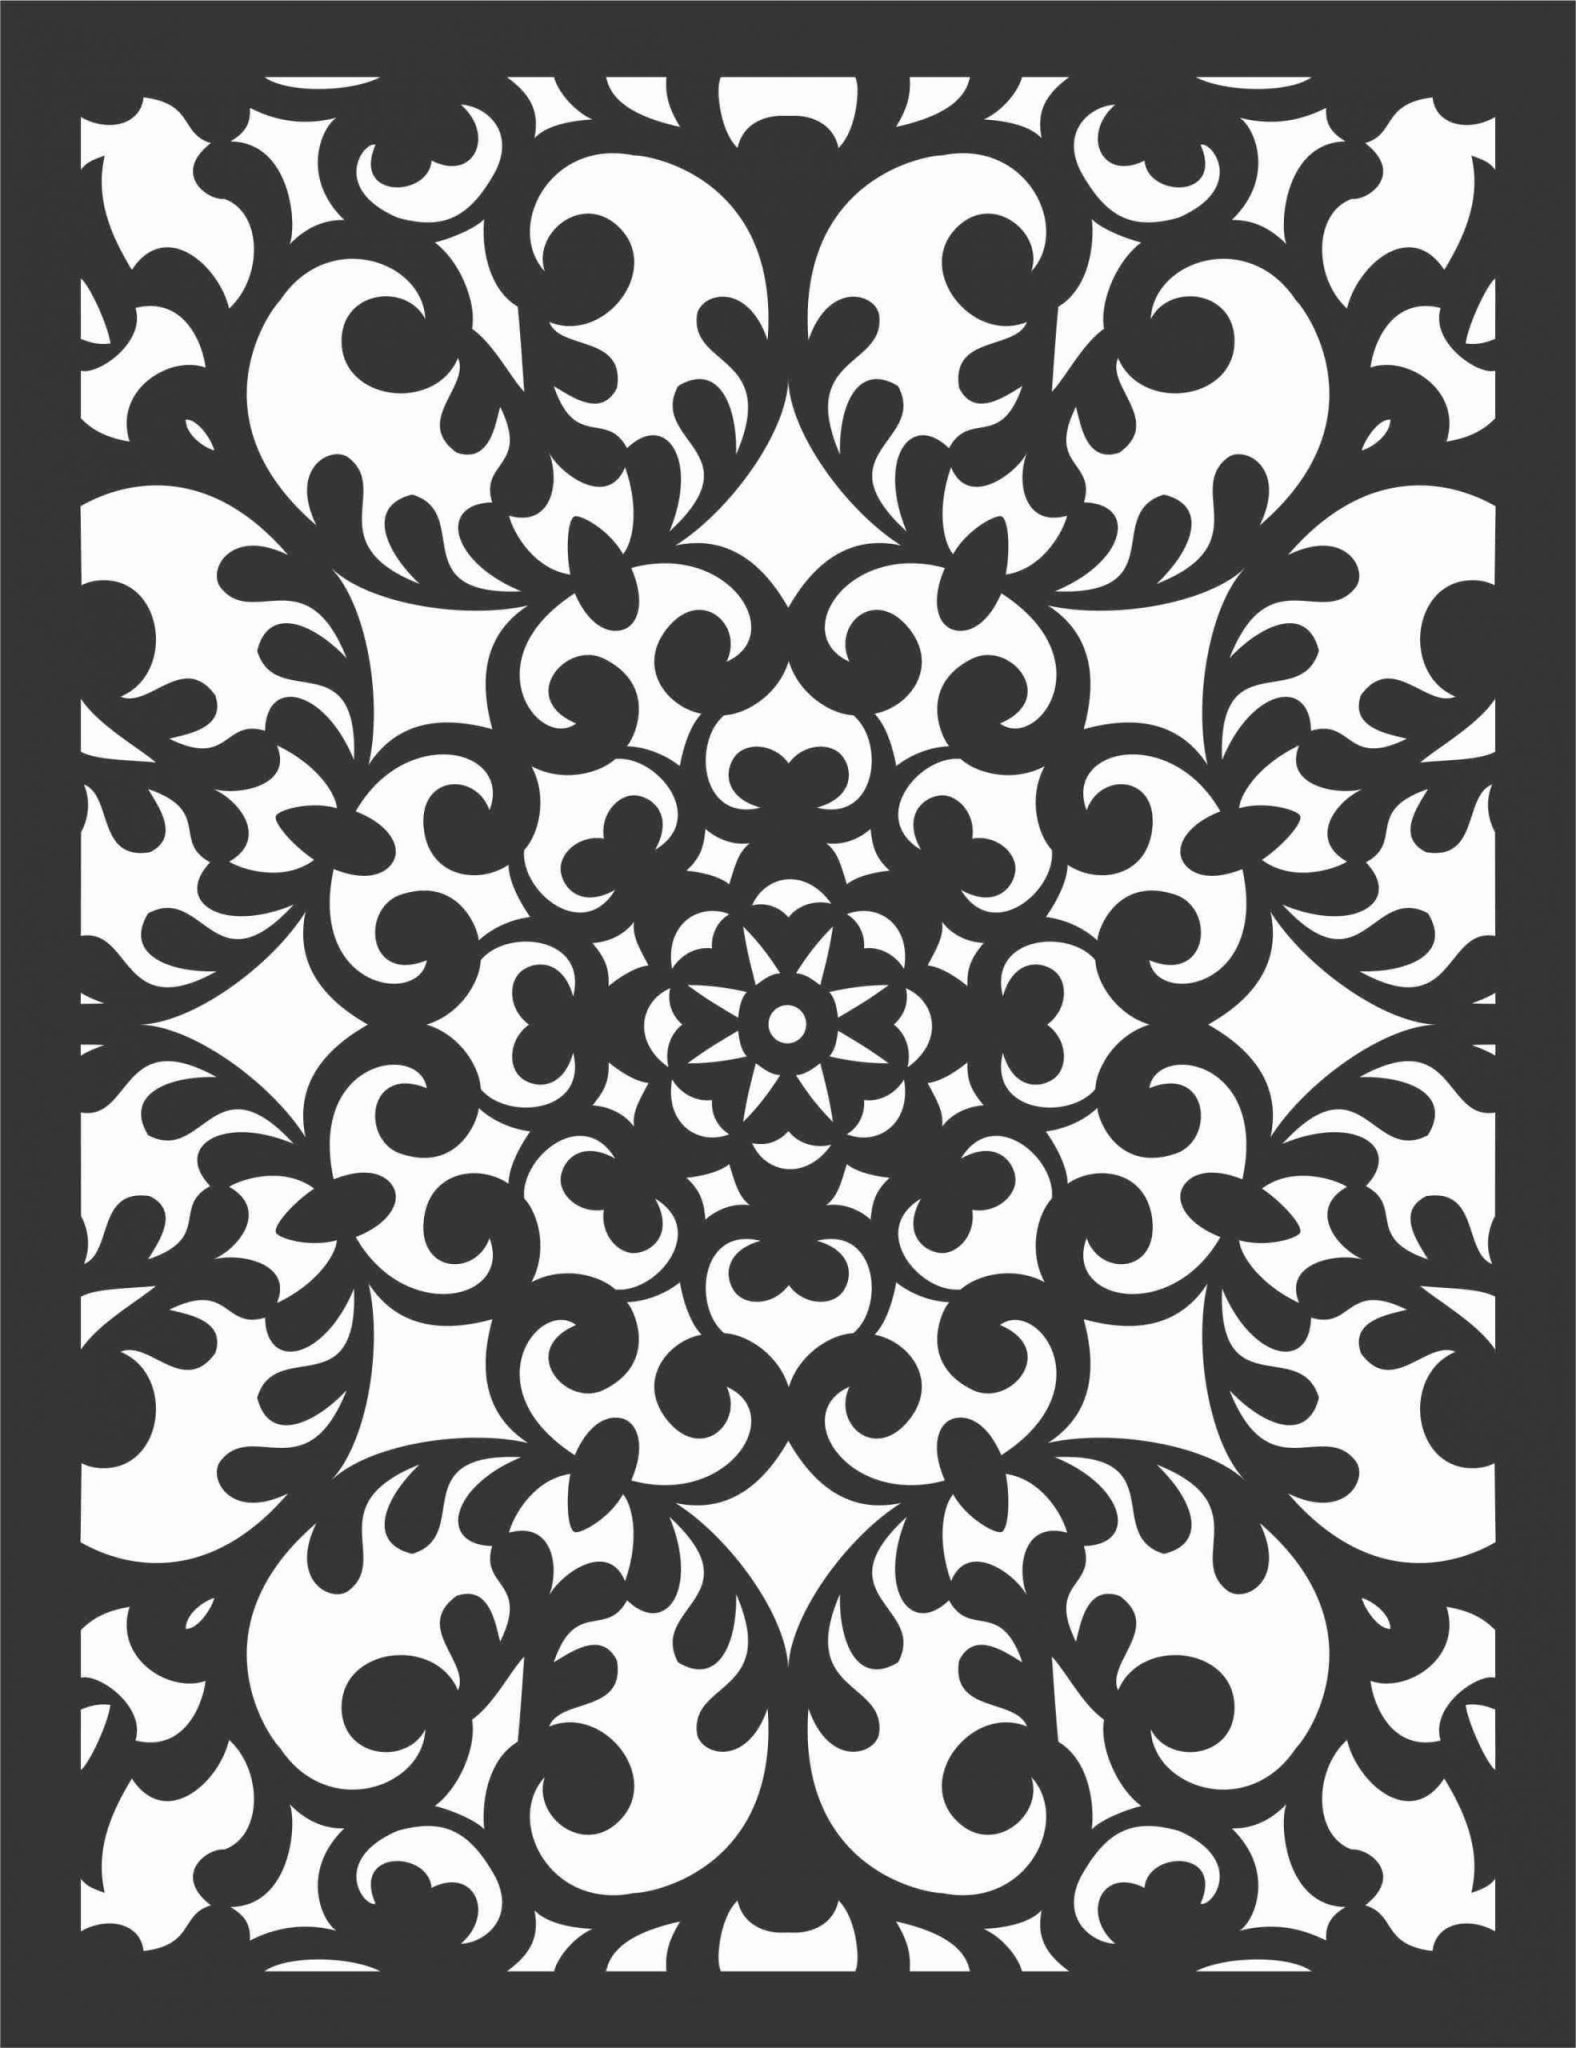 Floral Screen Patterns Design 7 Free DXF File